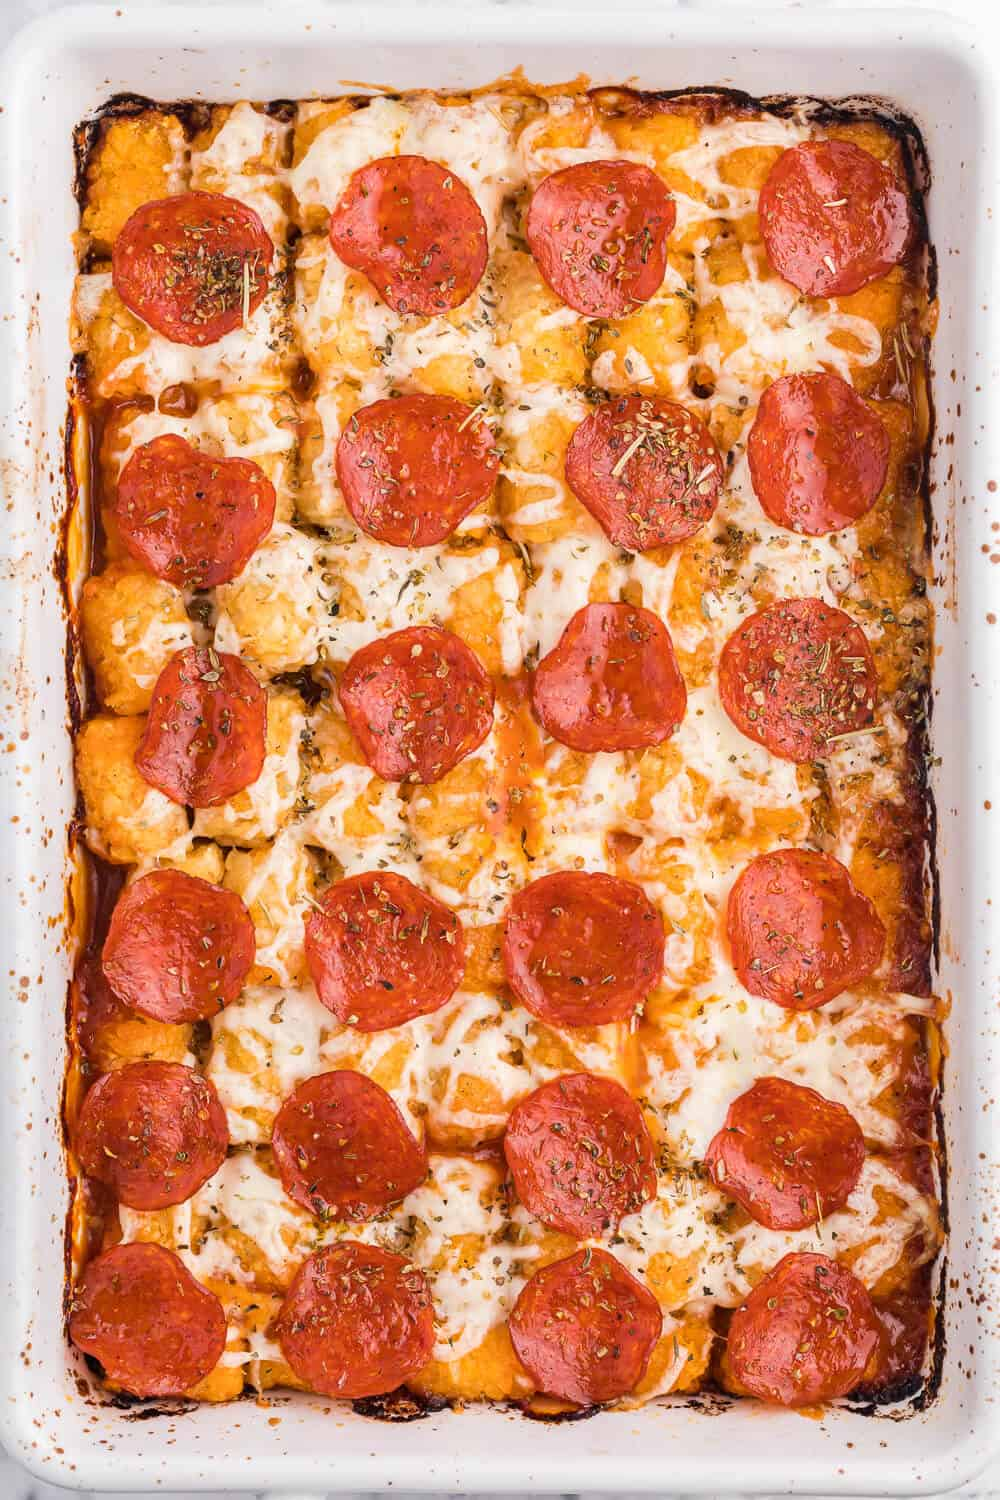 Pizza Tater Tot Casserole - This one is a surefire hit with kids and kids at heart. With a tater tot base, topped with all of your family's favourite pizza flavours, this is a great alternative for pizza night!